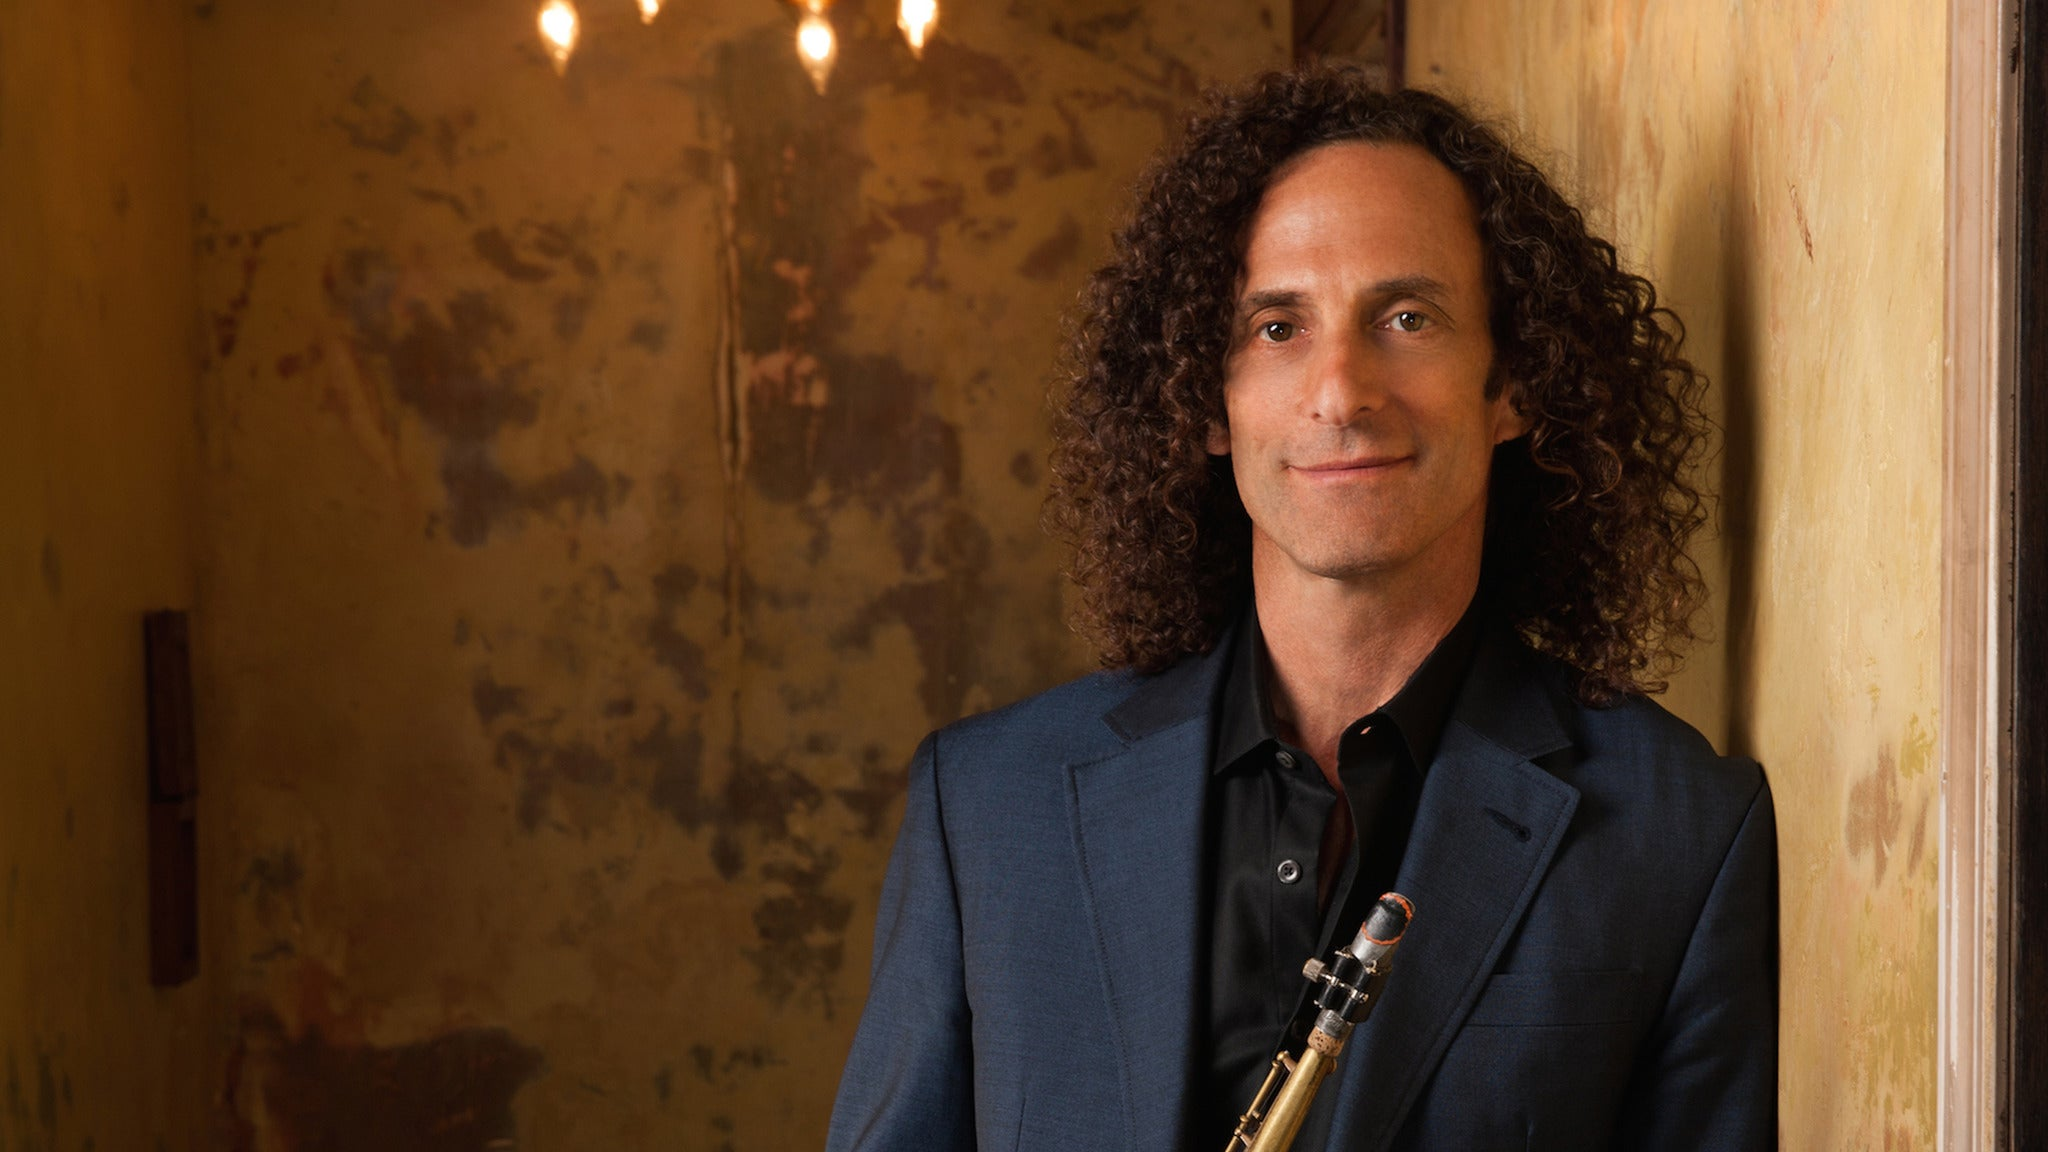 Kenny G at Miller Theater - GA